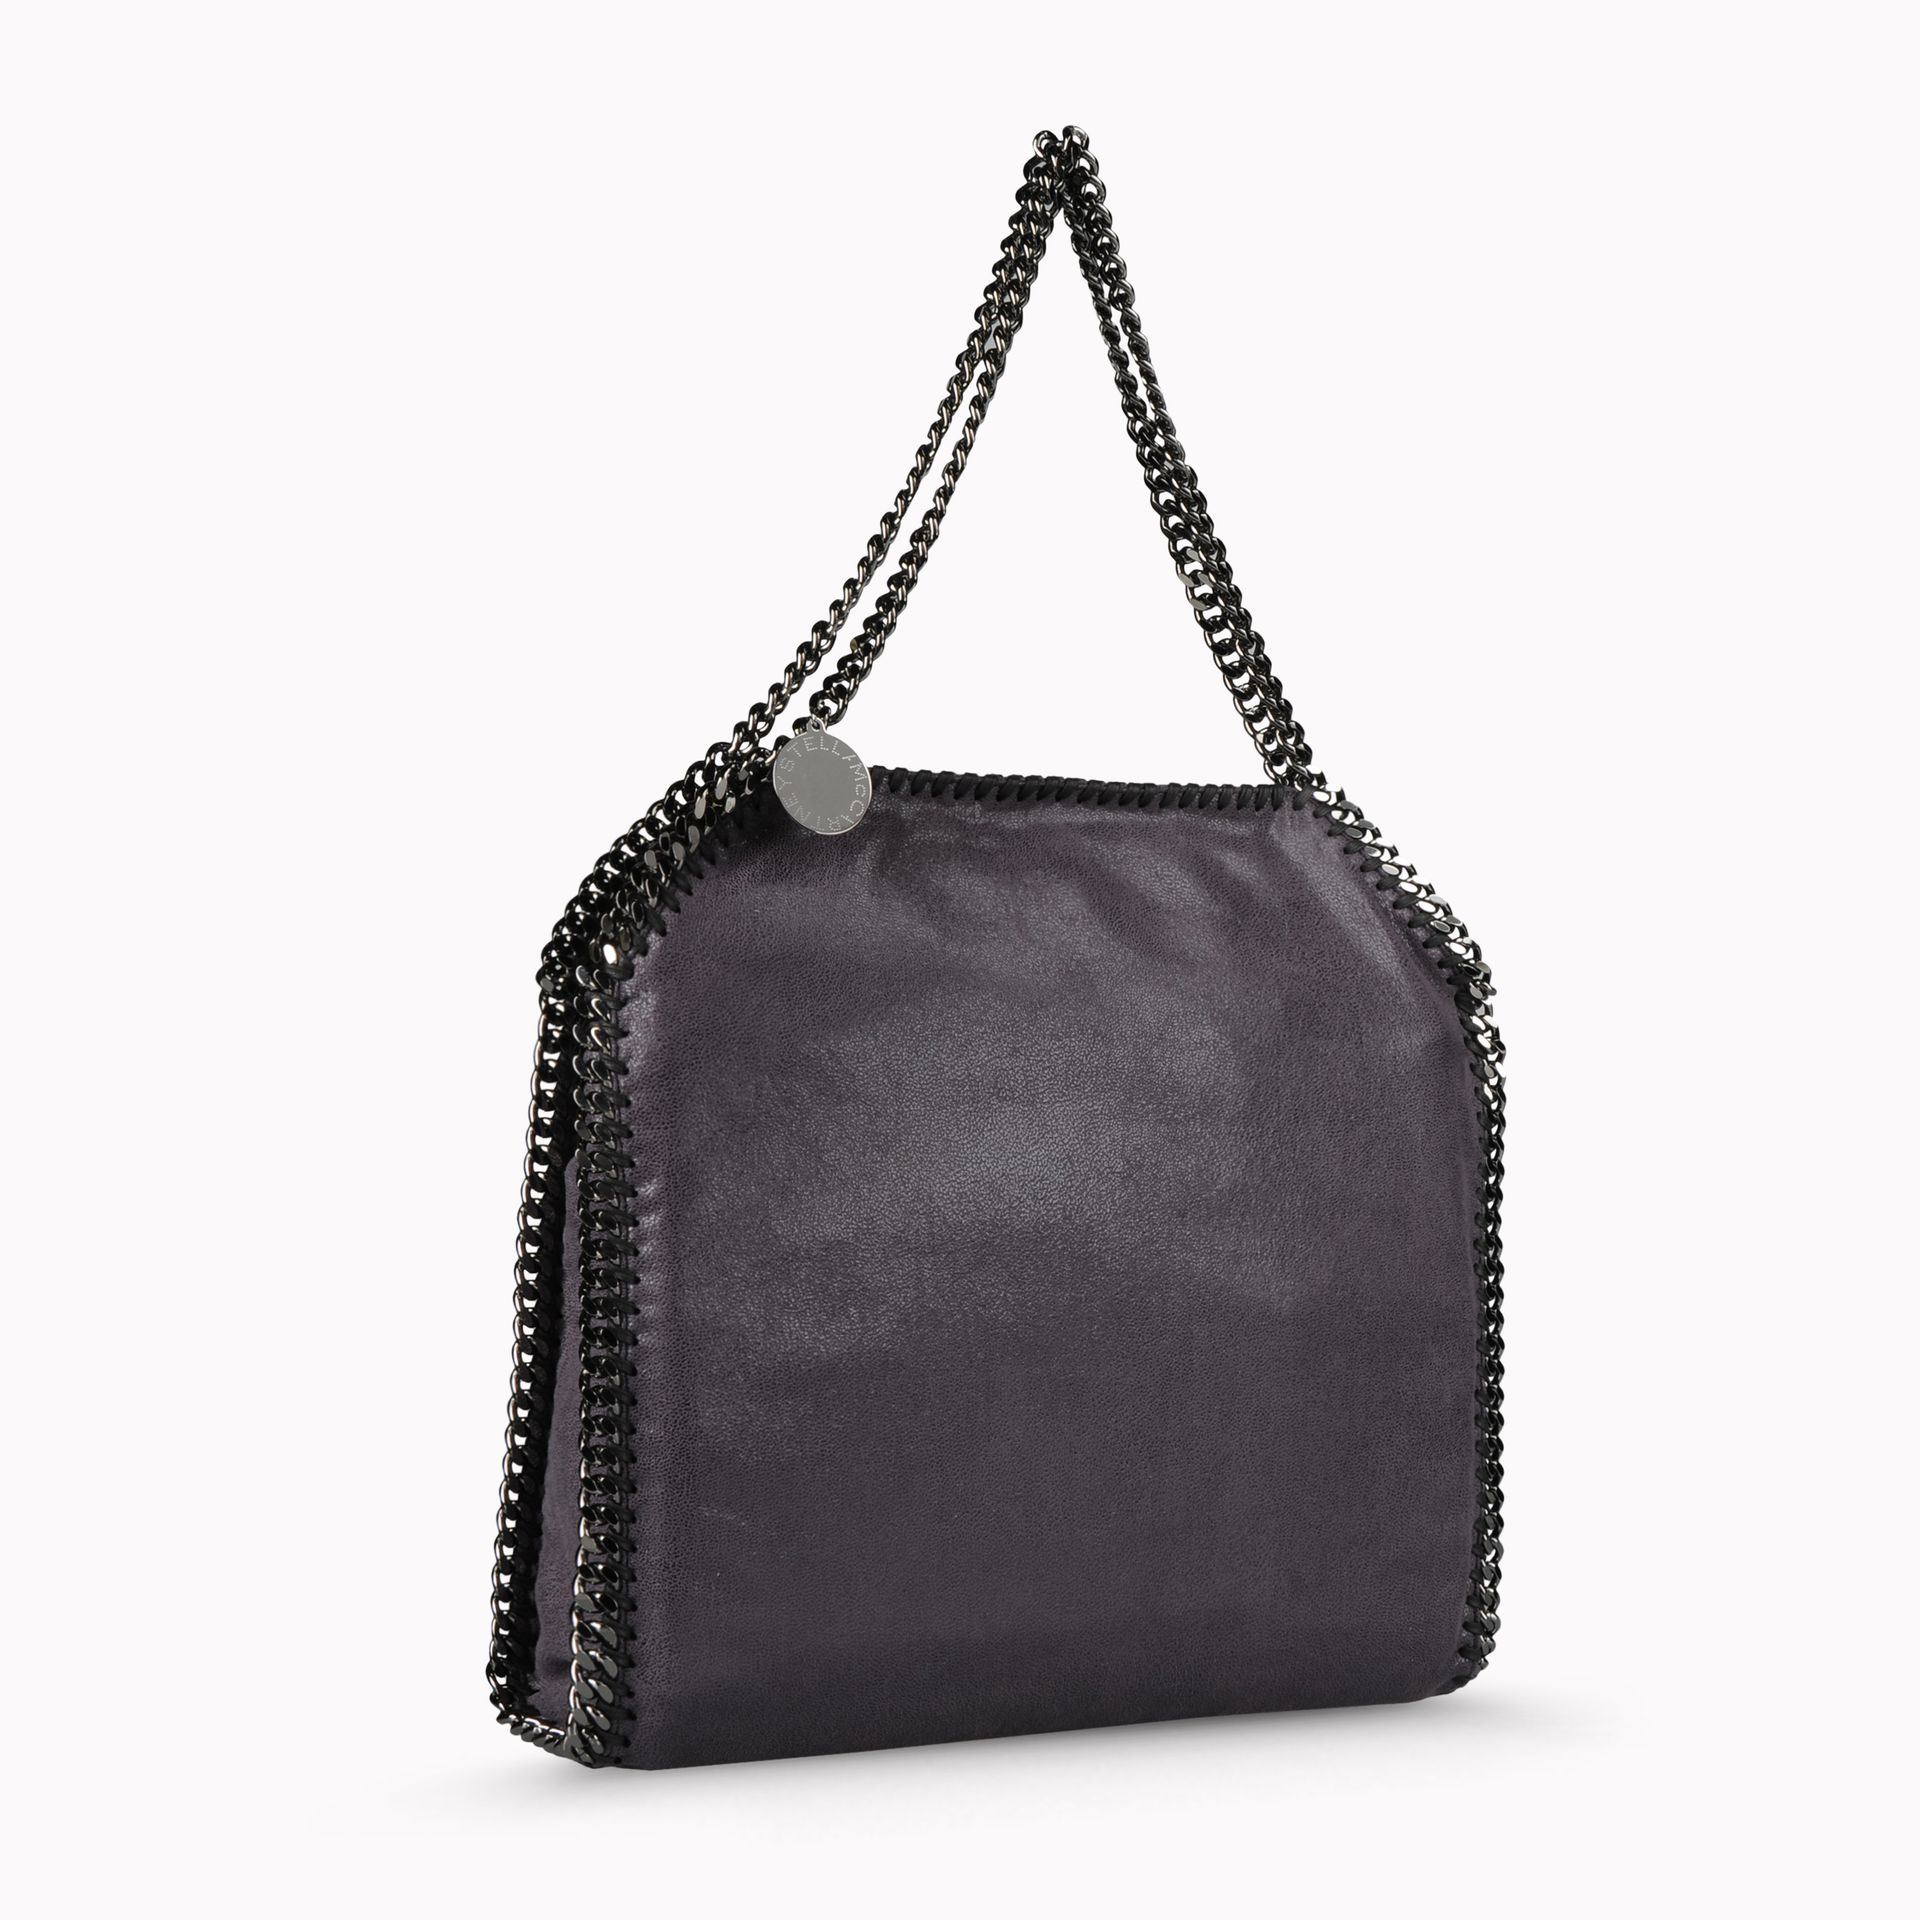 Stella McCartney Synthetic Black Falabella Shaggy Deer Small Tote